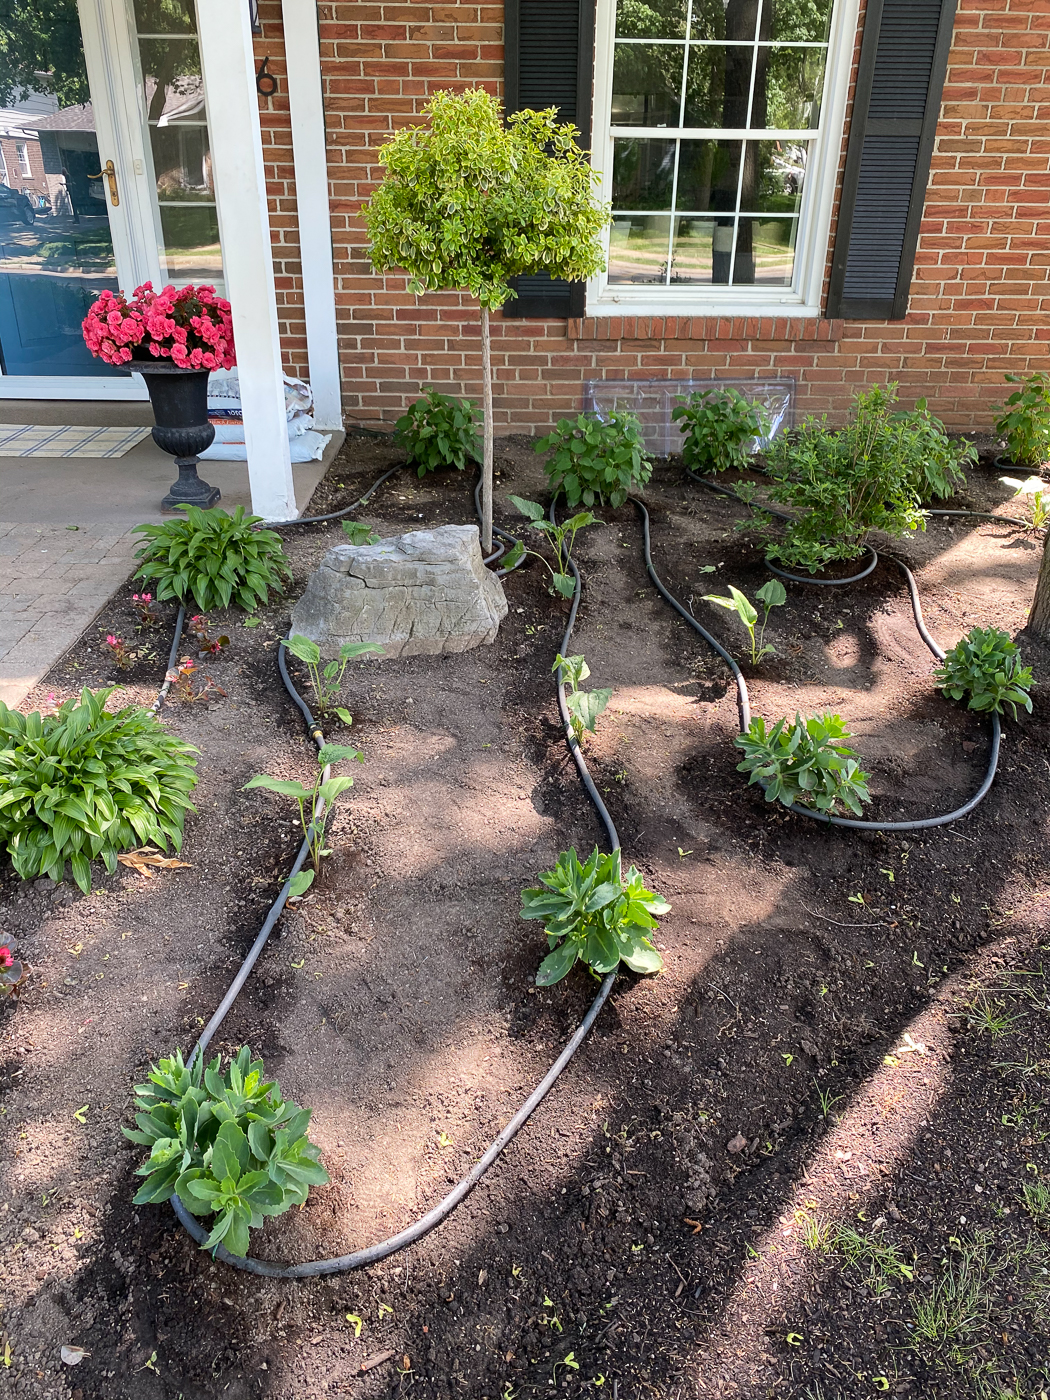 how to set up a soaker hose system, garden soaker hose, soaker hose watering system, how to water garden with soaker hose